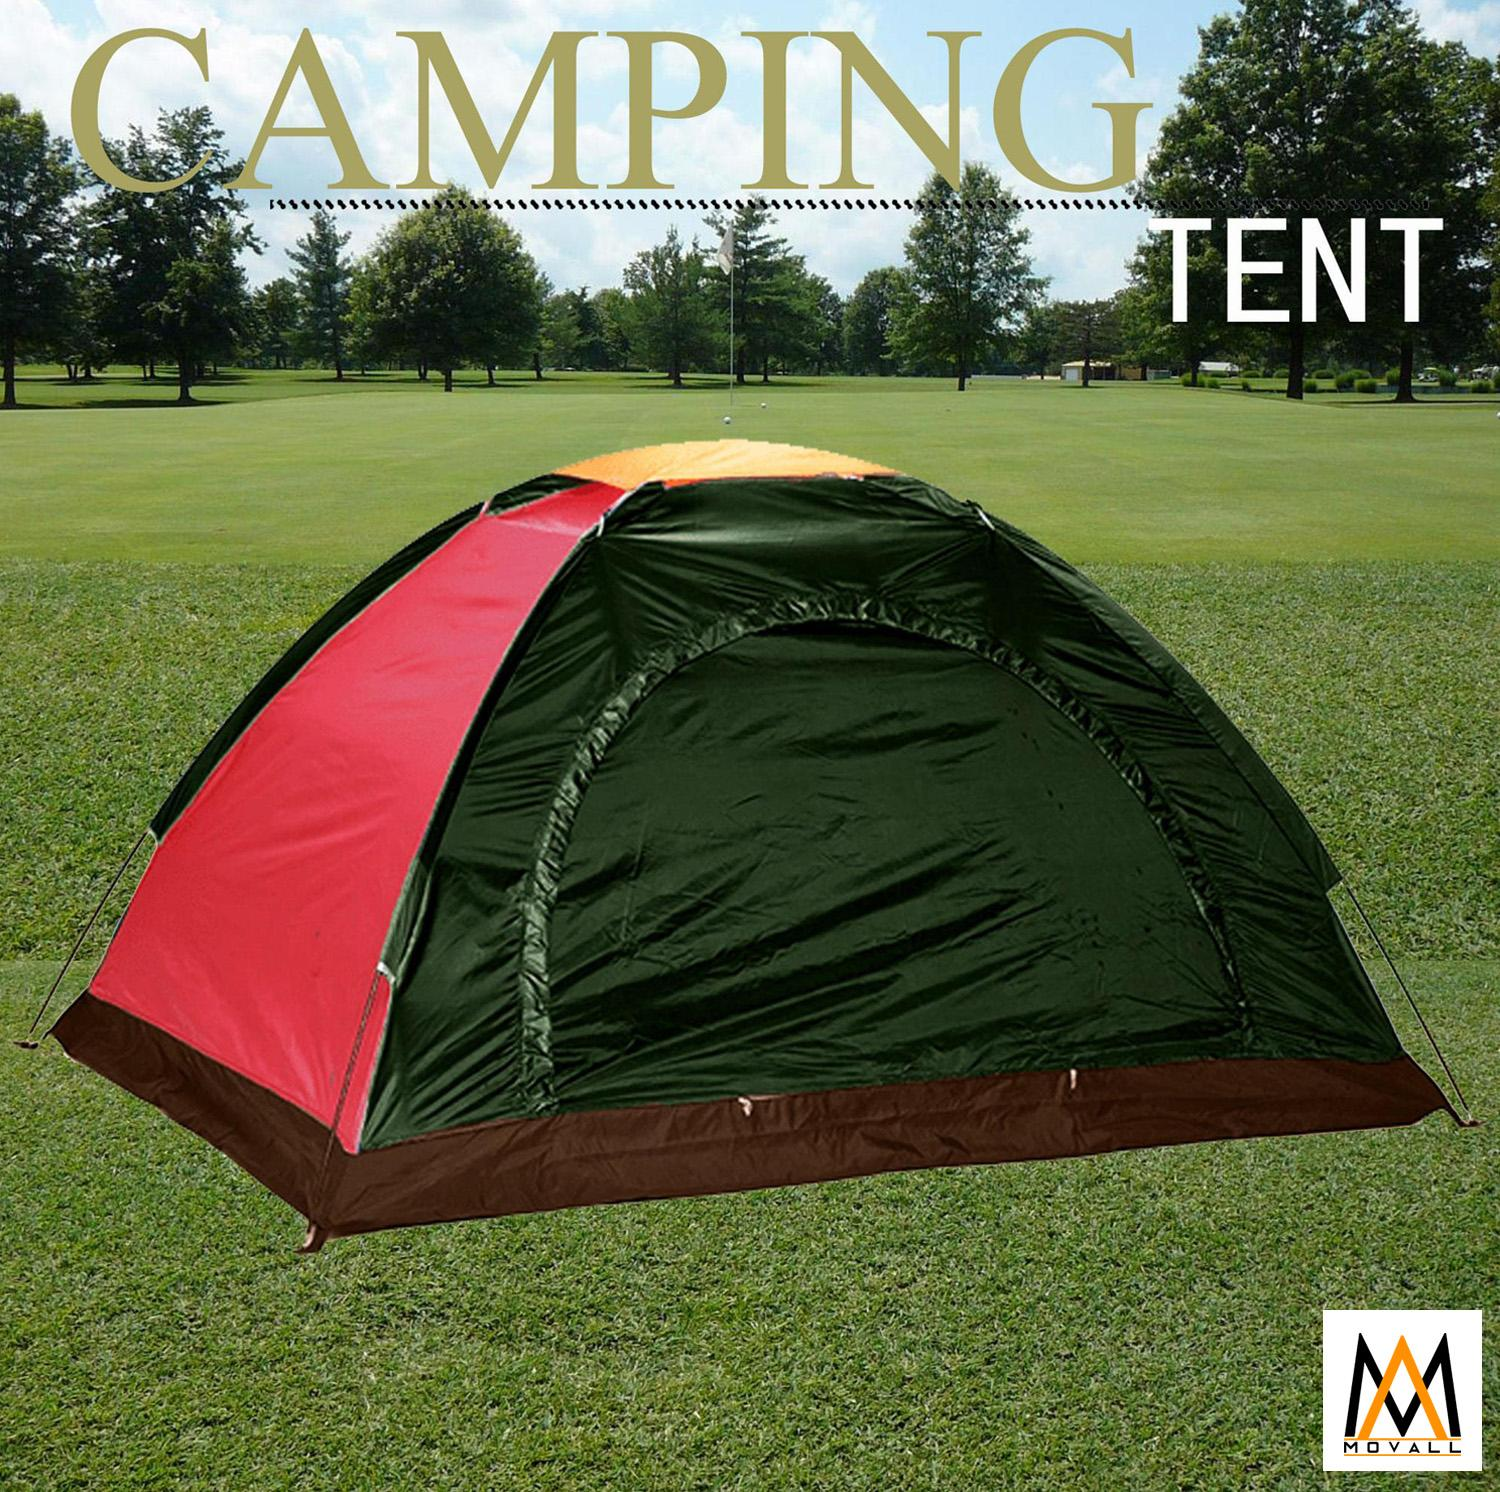 6-Person Dome Camping Tent (multicolor) By Movall.